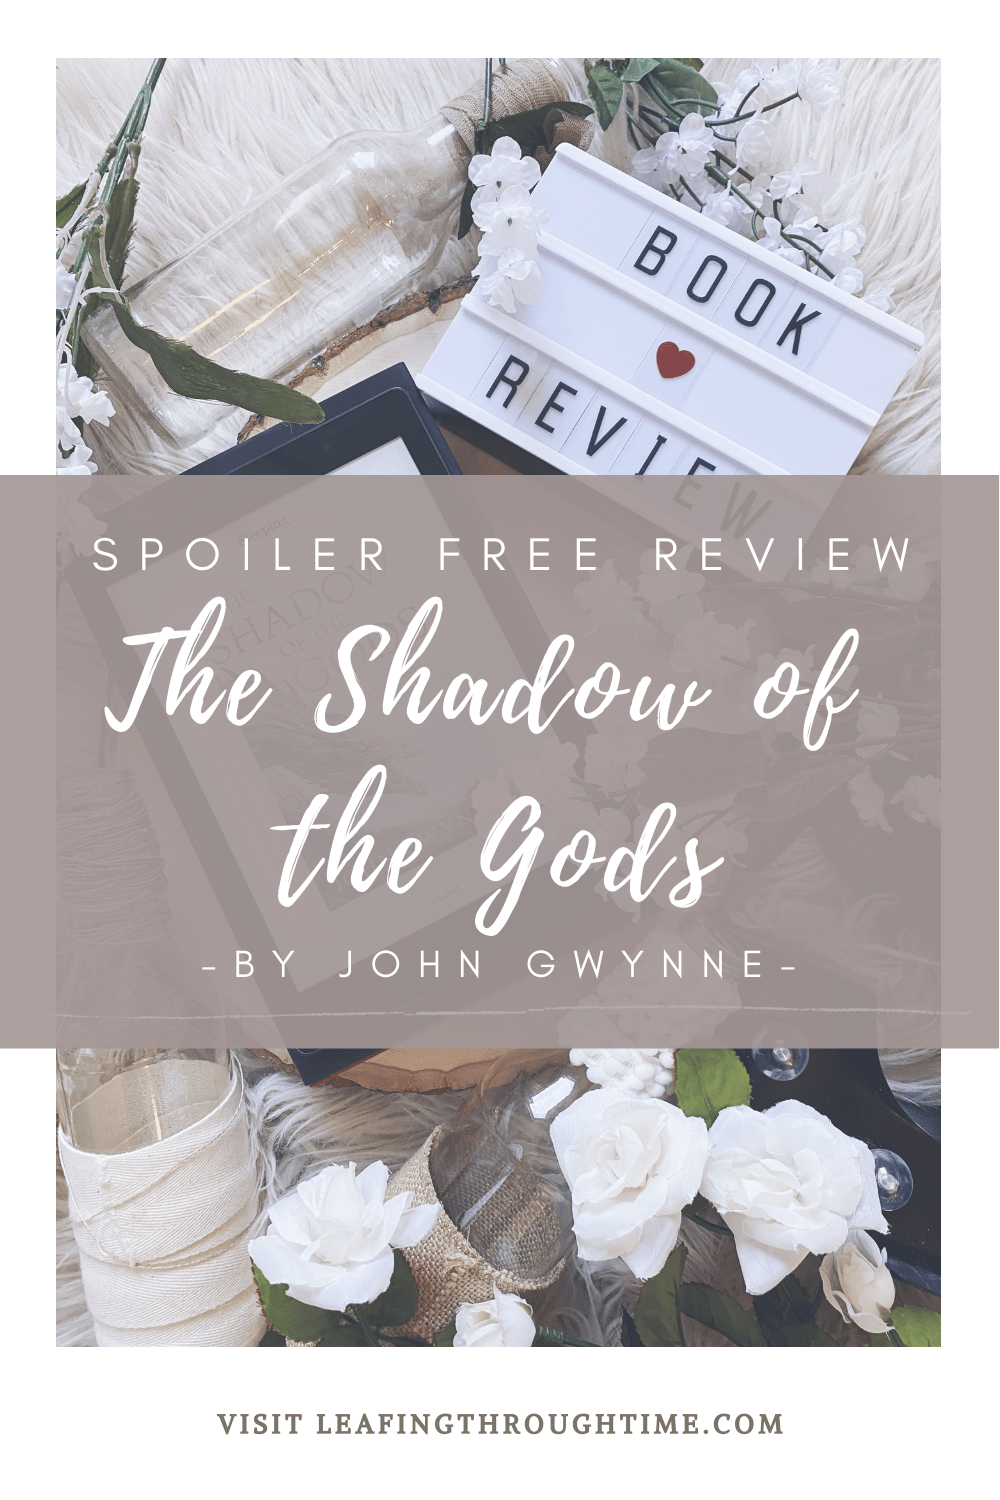 The Shadow of the Gods – Spoiler Free Review